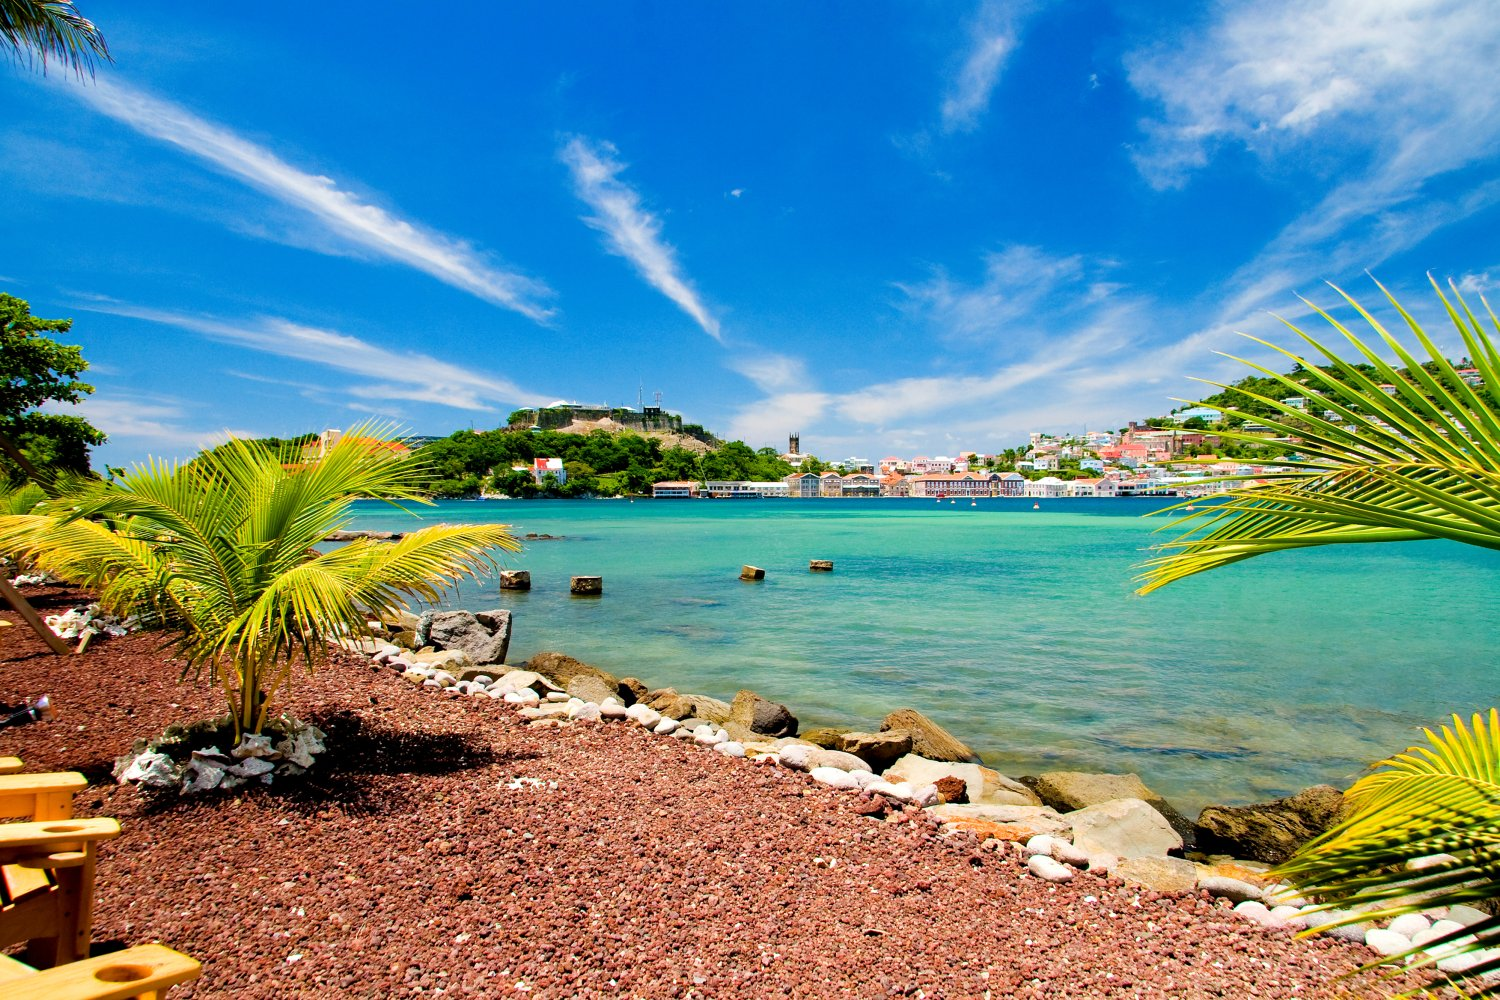 Things To Do In Grenada The Caribbean Island Of Spice - Grenada